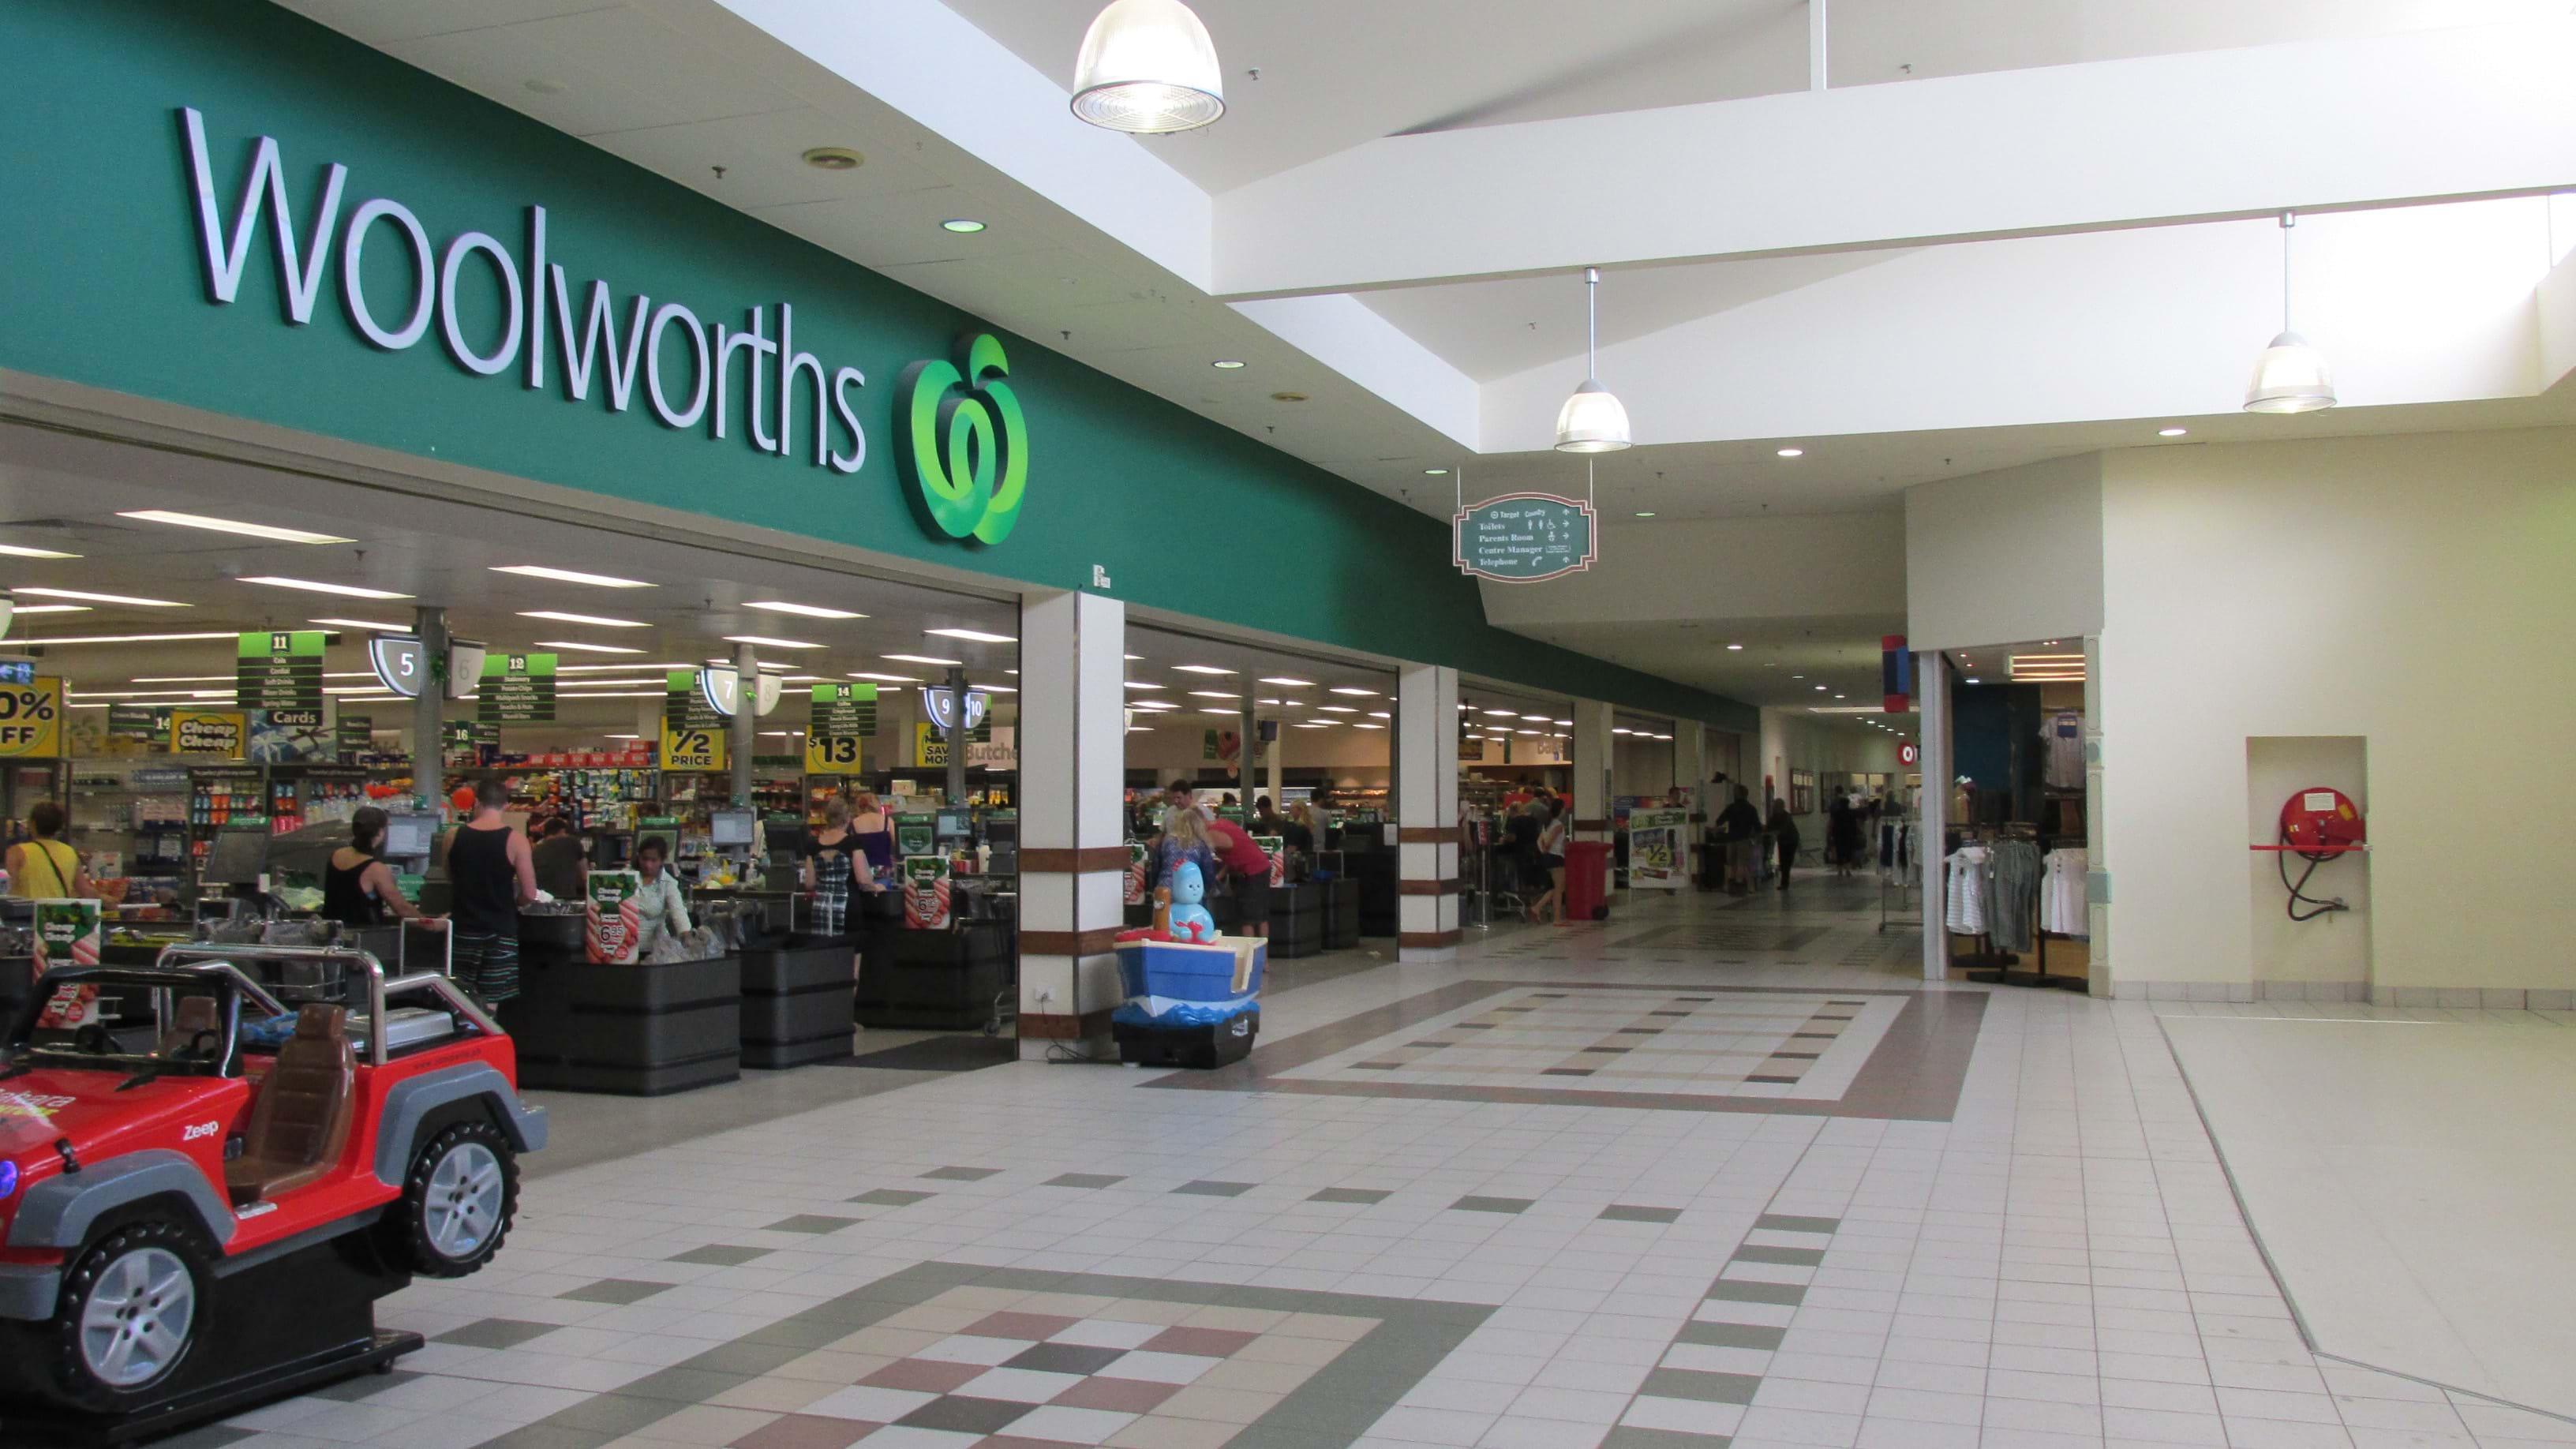 Woolworths shuts doors across the country due to IT outage